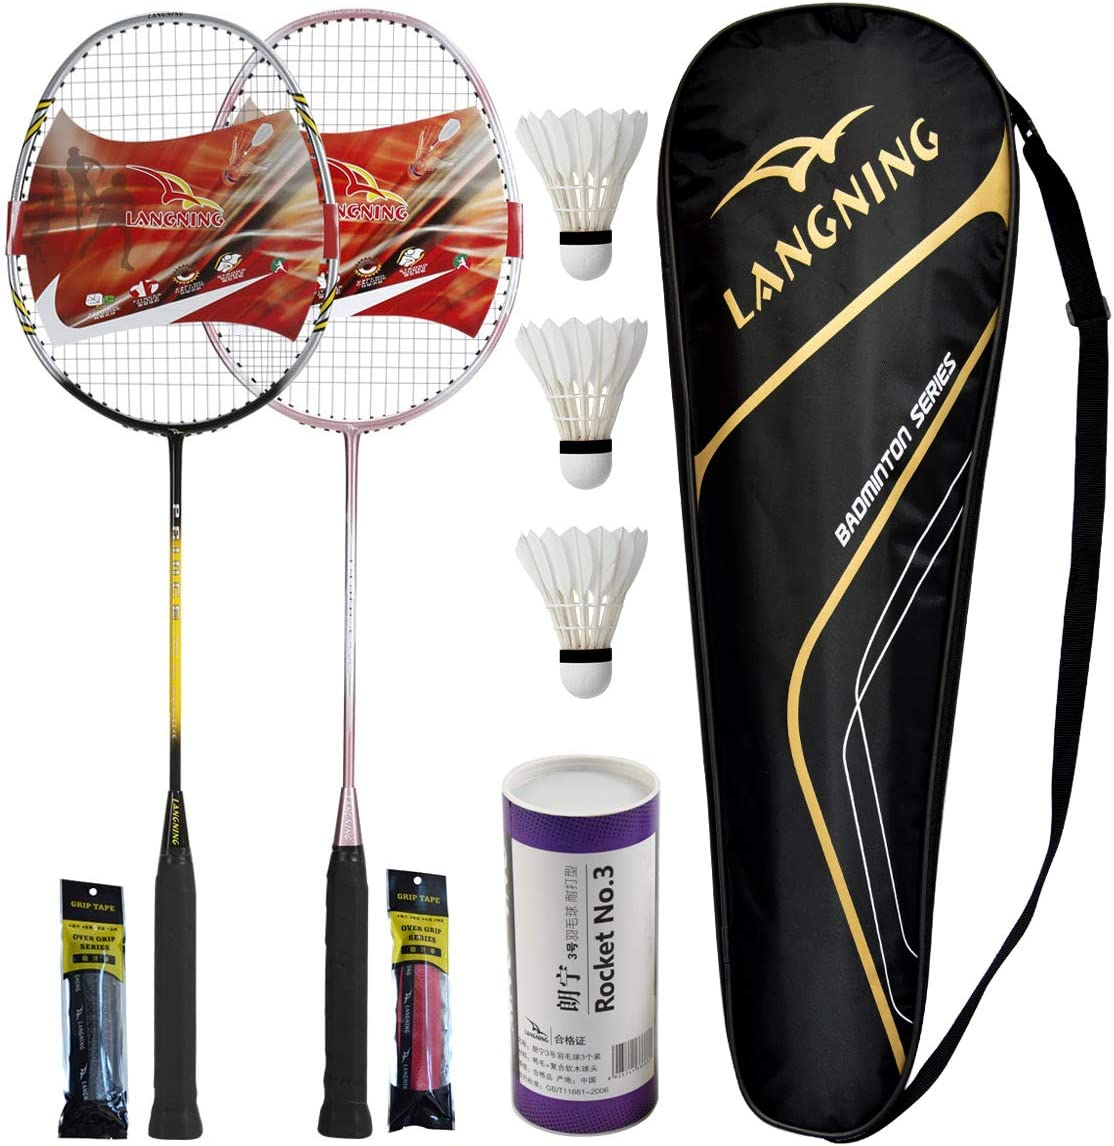 LANGNING Badminton Rackets Limited Special Price Max 60% OFF Set 2 Lightweight Fiber Carbon H Full